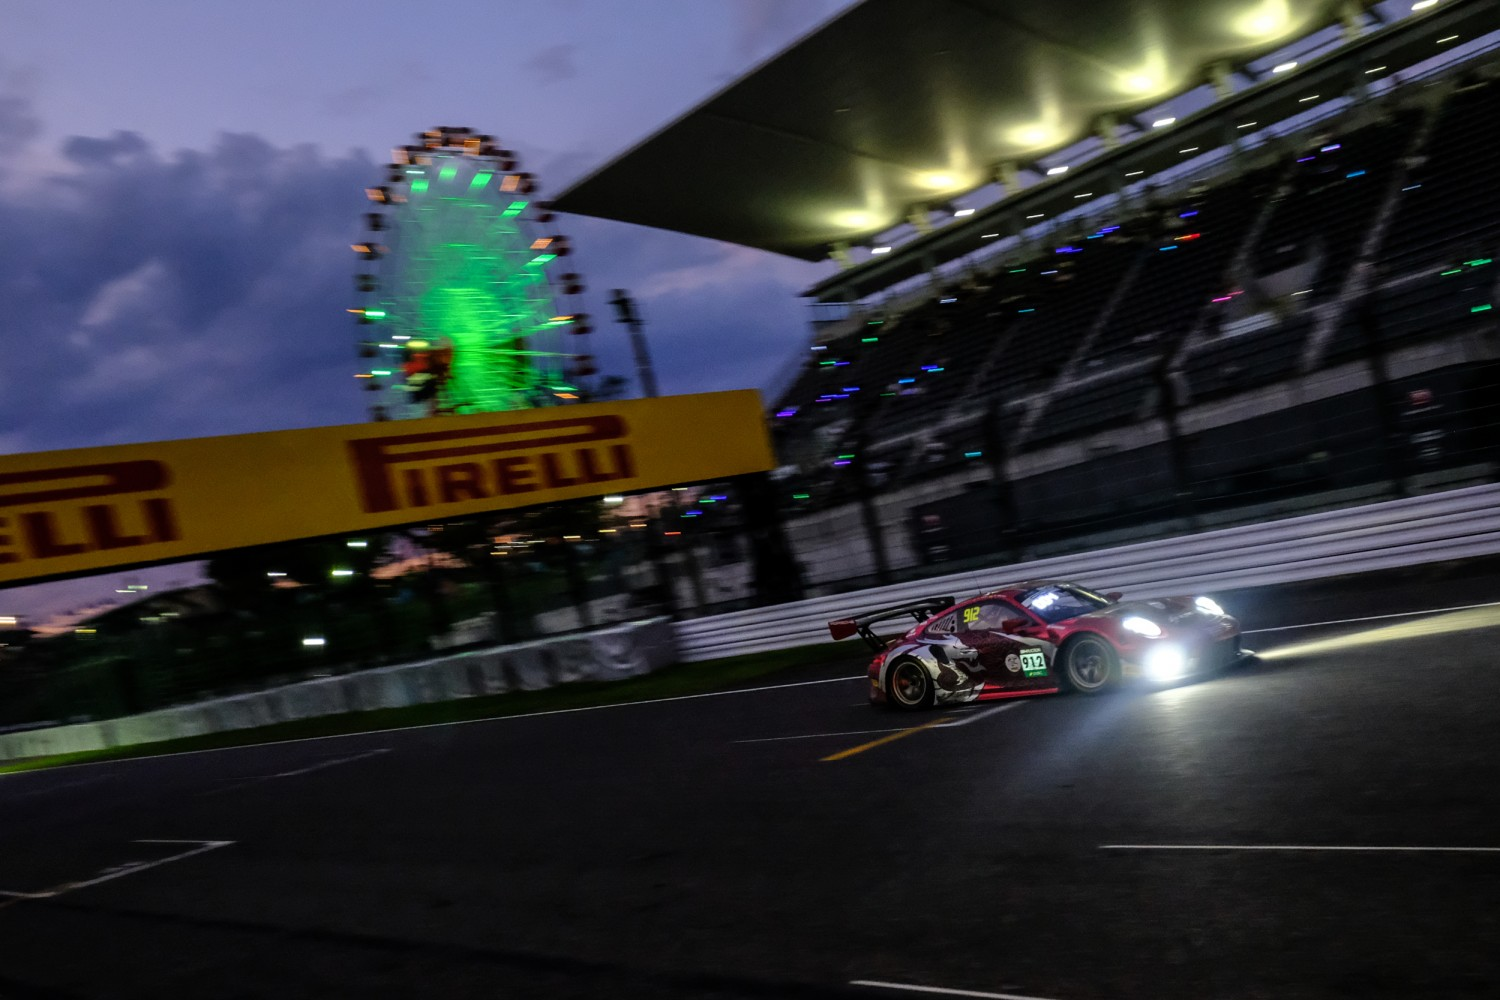 Covid-19 measures force Suzuka 10 Hours cancellation